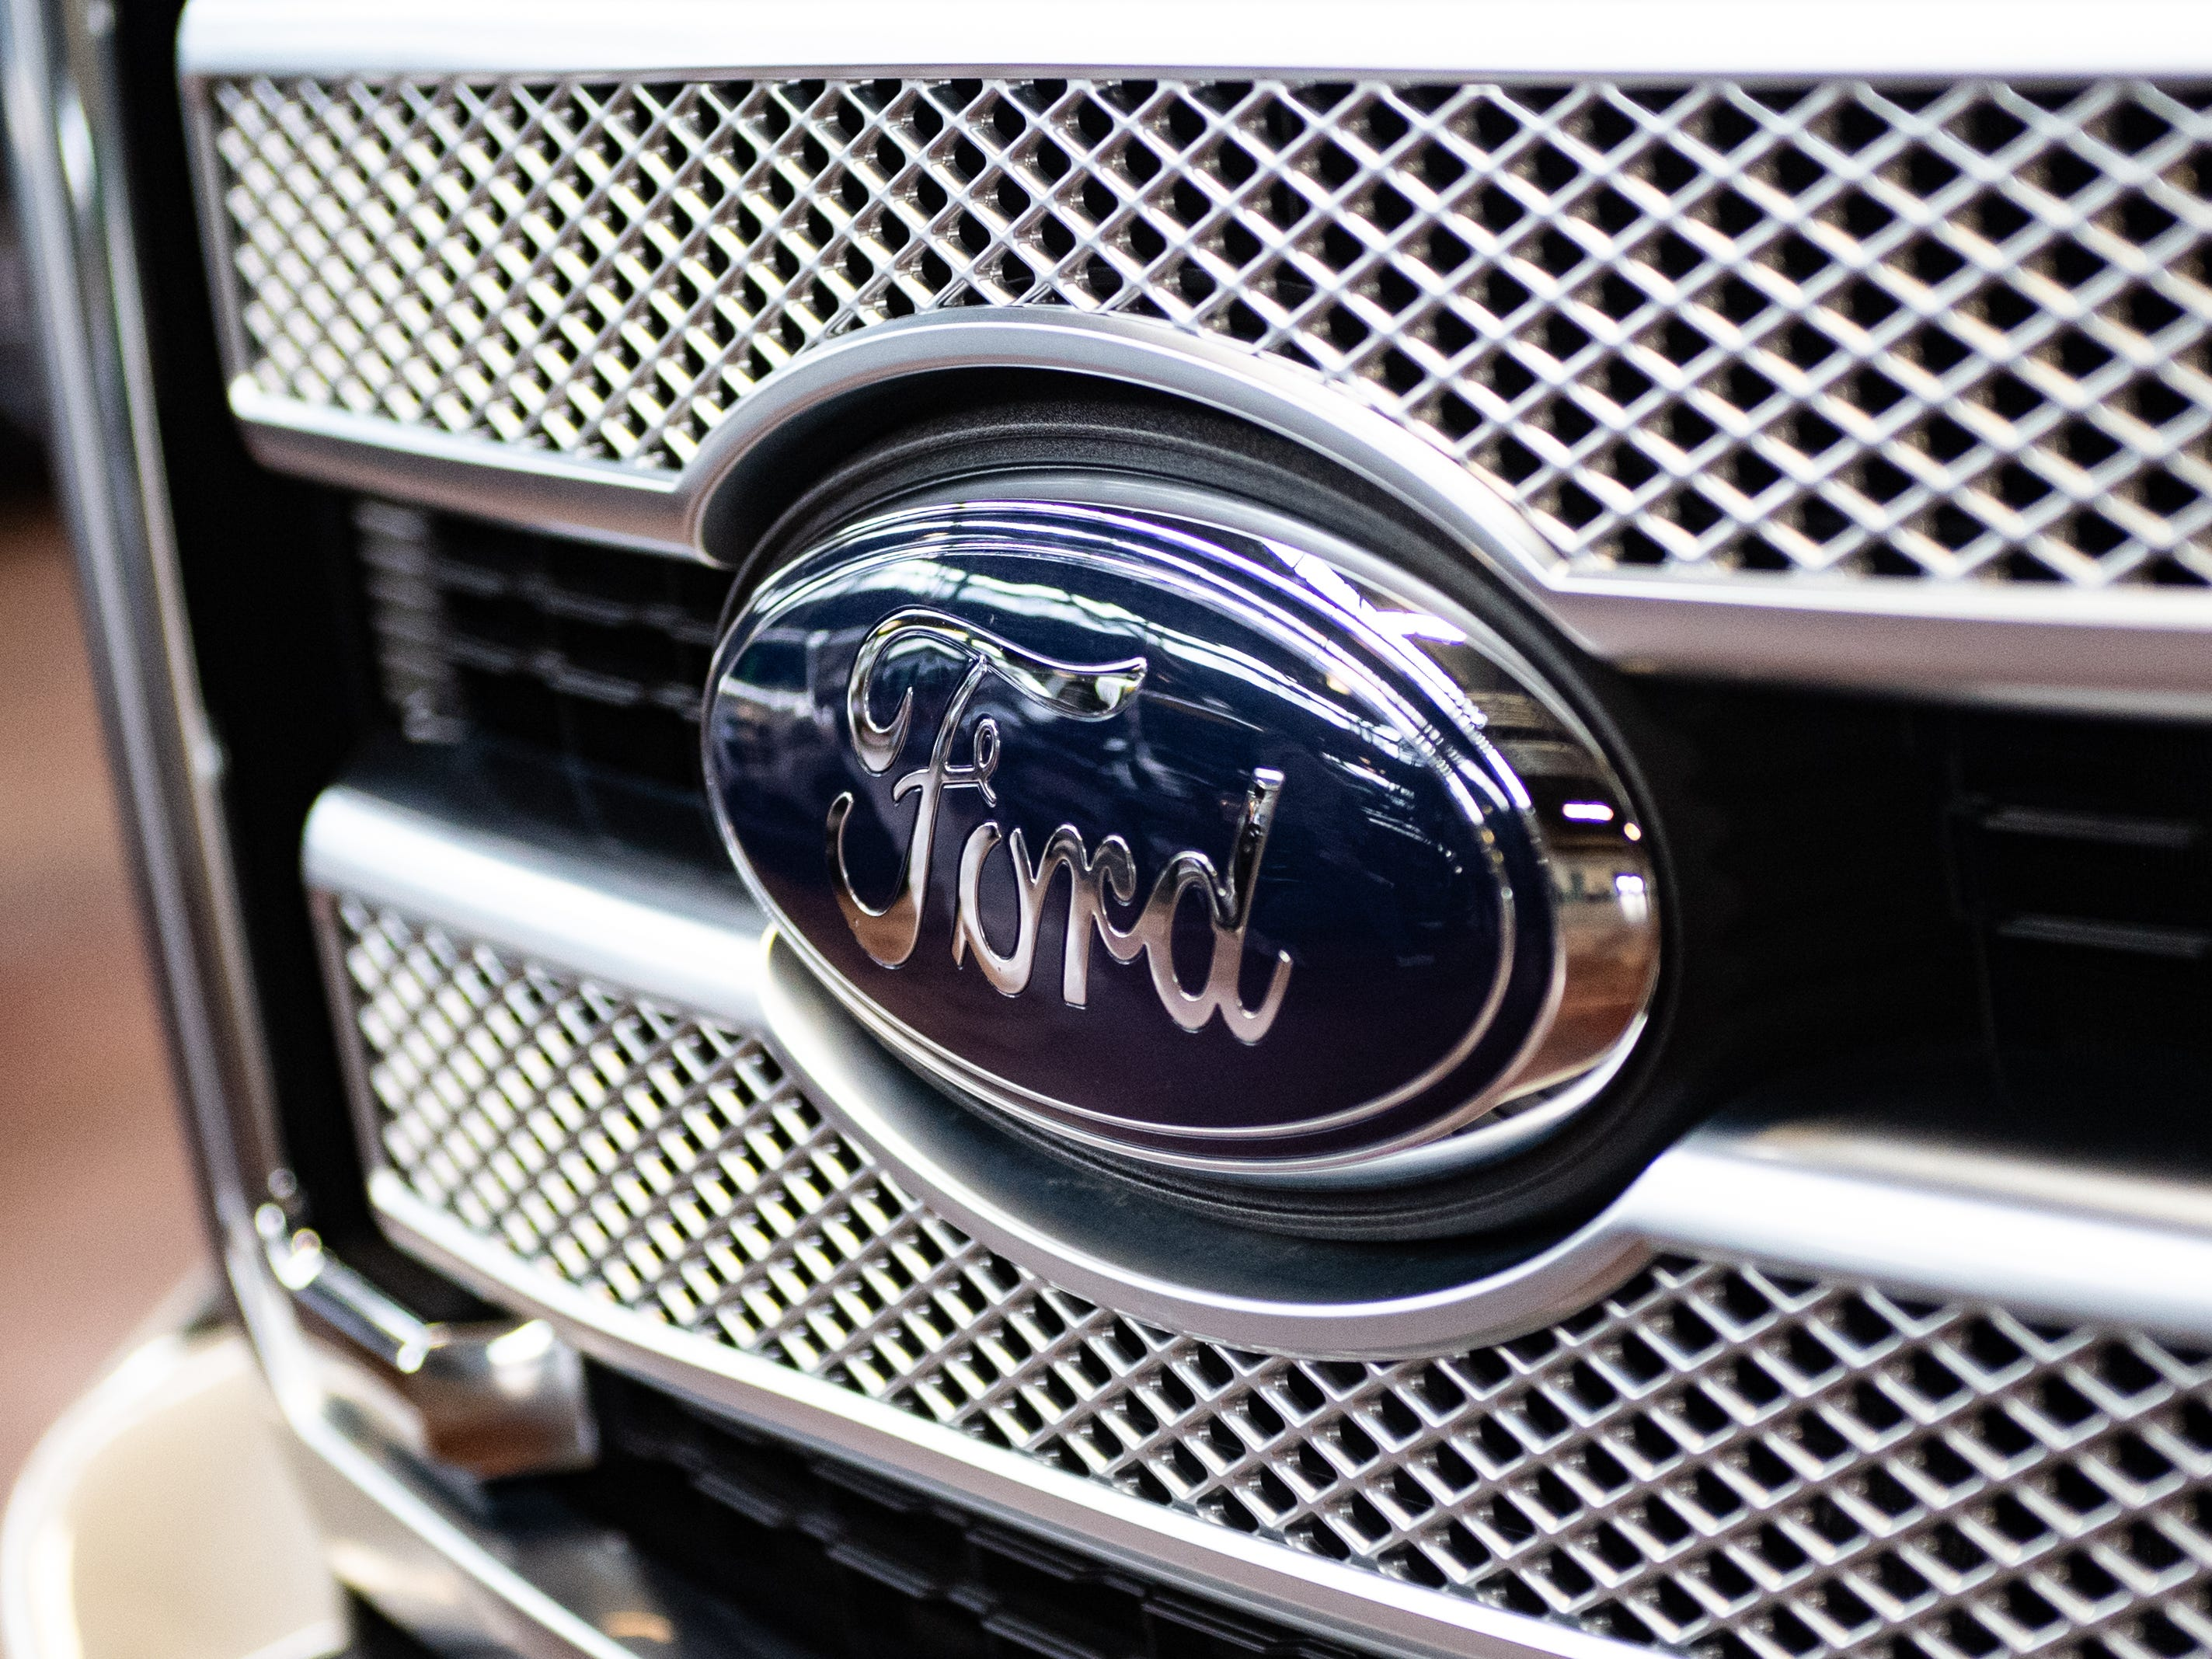 Ford is one of many car manufacturers that brought their vehicles to the show, Saturday, January 26, 2019. The auto show continues on Sunday from 10 a.m. to 5 p.m.